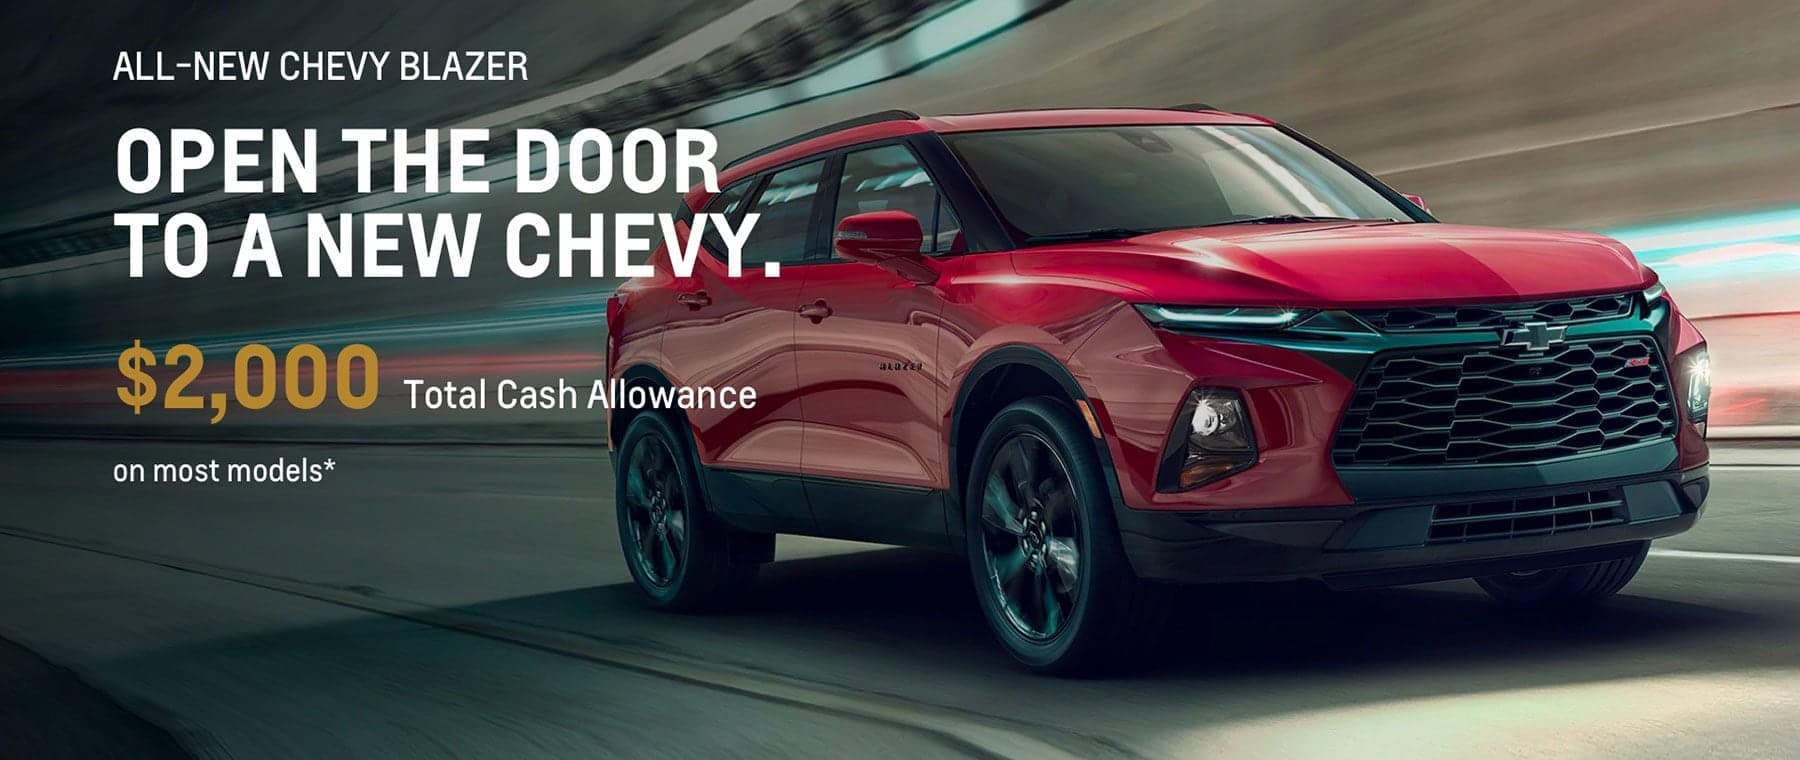 All-New Chevy Blazer, Open the door to a new Chevy - $2,000 Total Cash Allowance on most models*